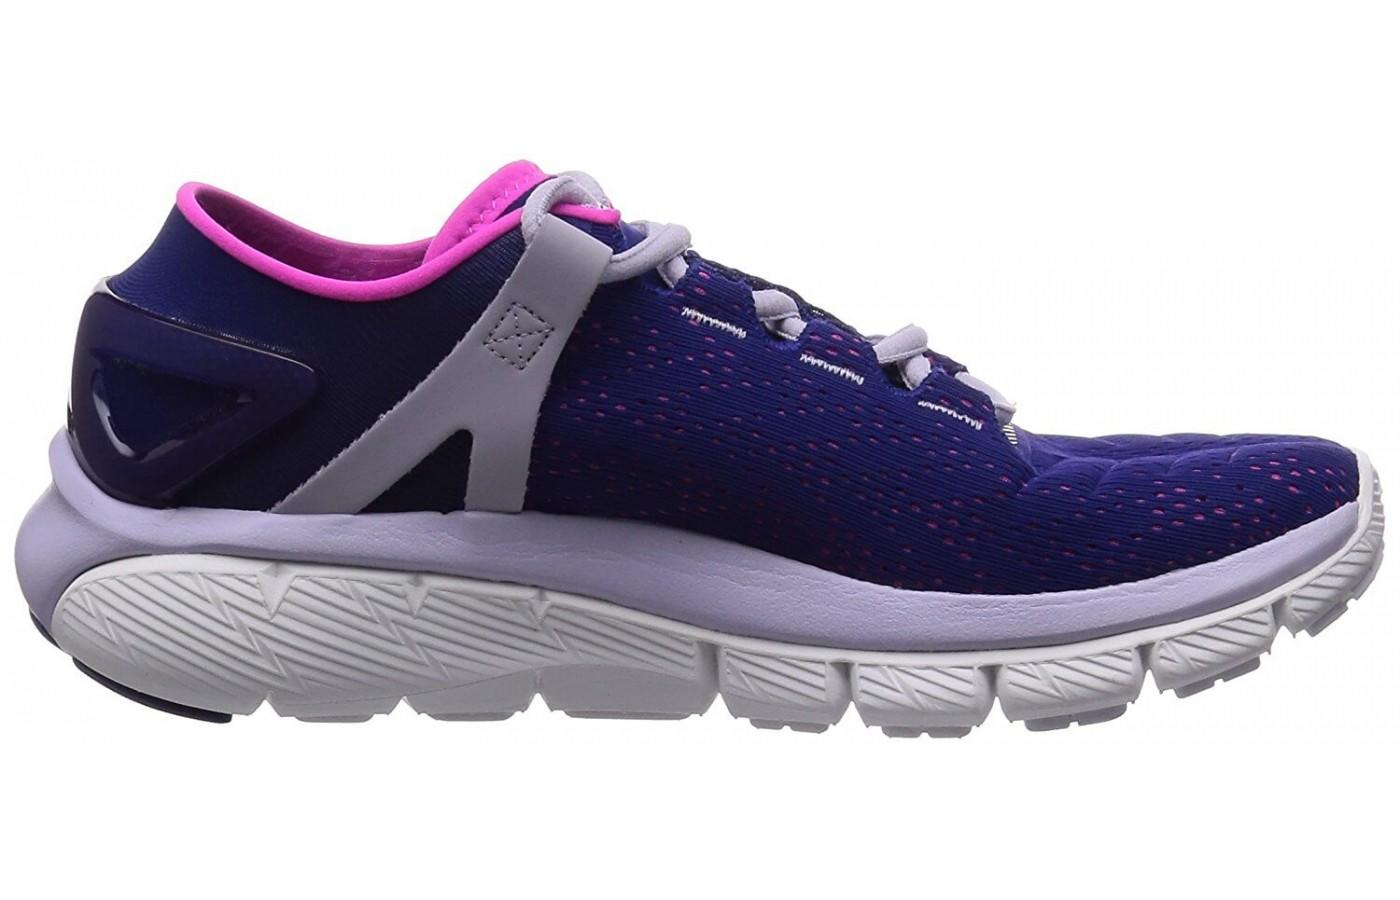 side view of the Under Armour SpeedForm Fortis showcasing it's superior cushoning